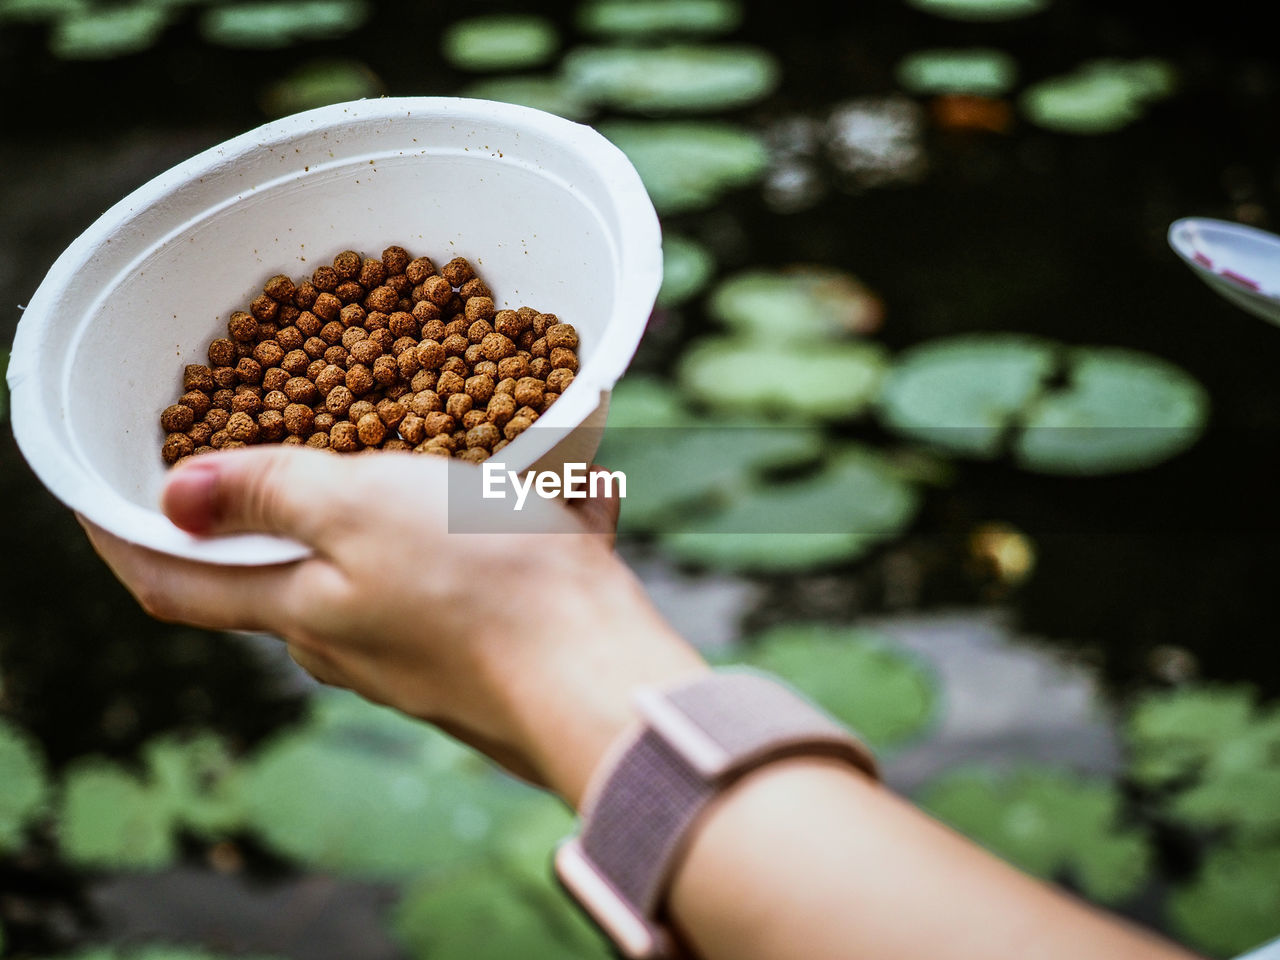 Cropped hand holding food in bowl against lake